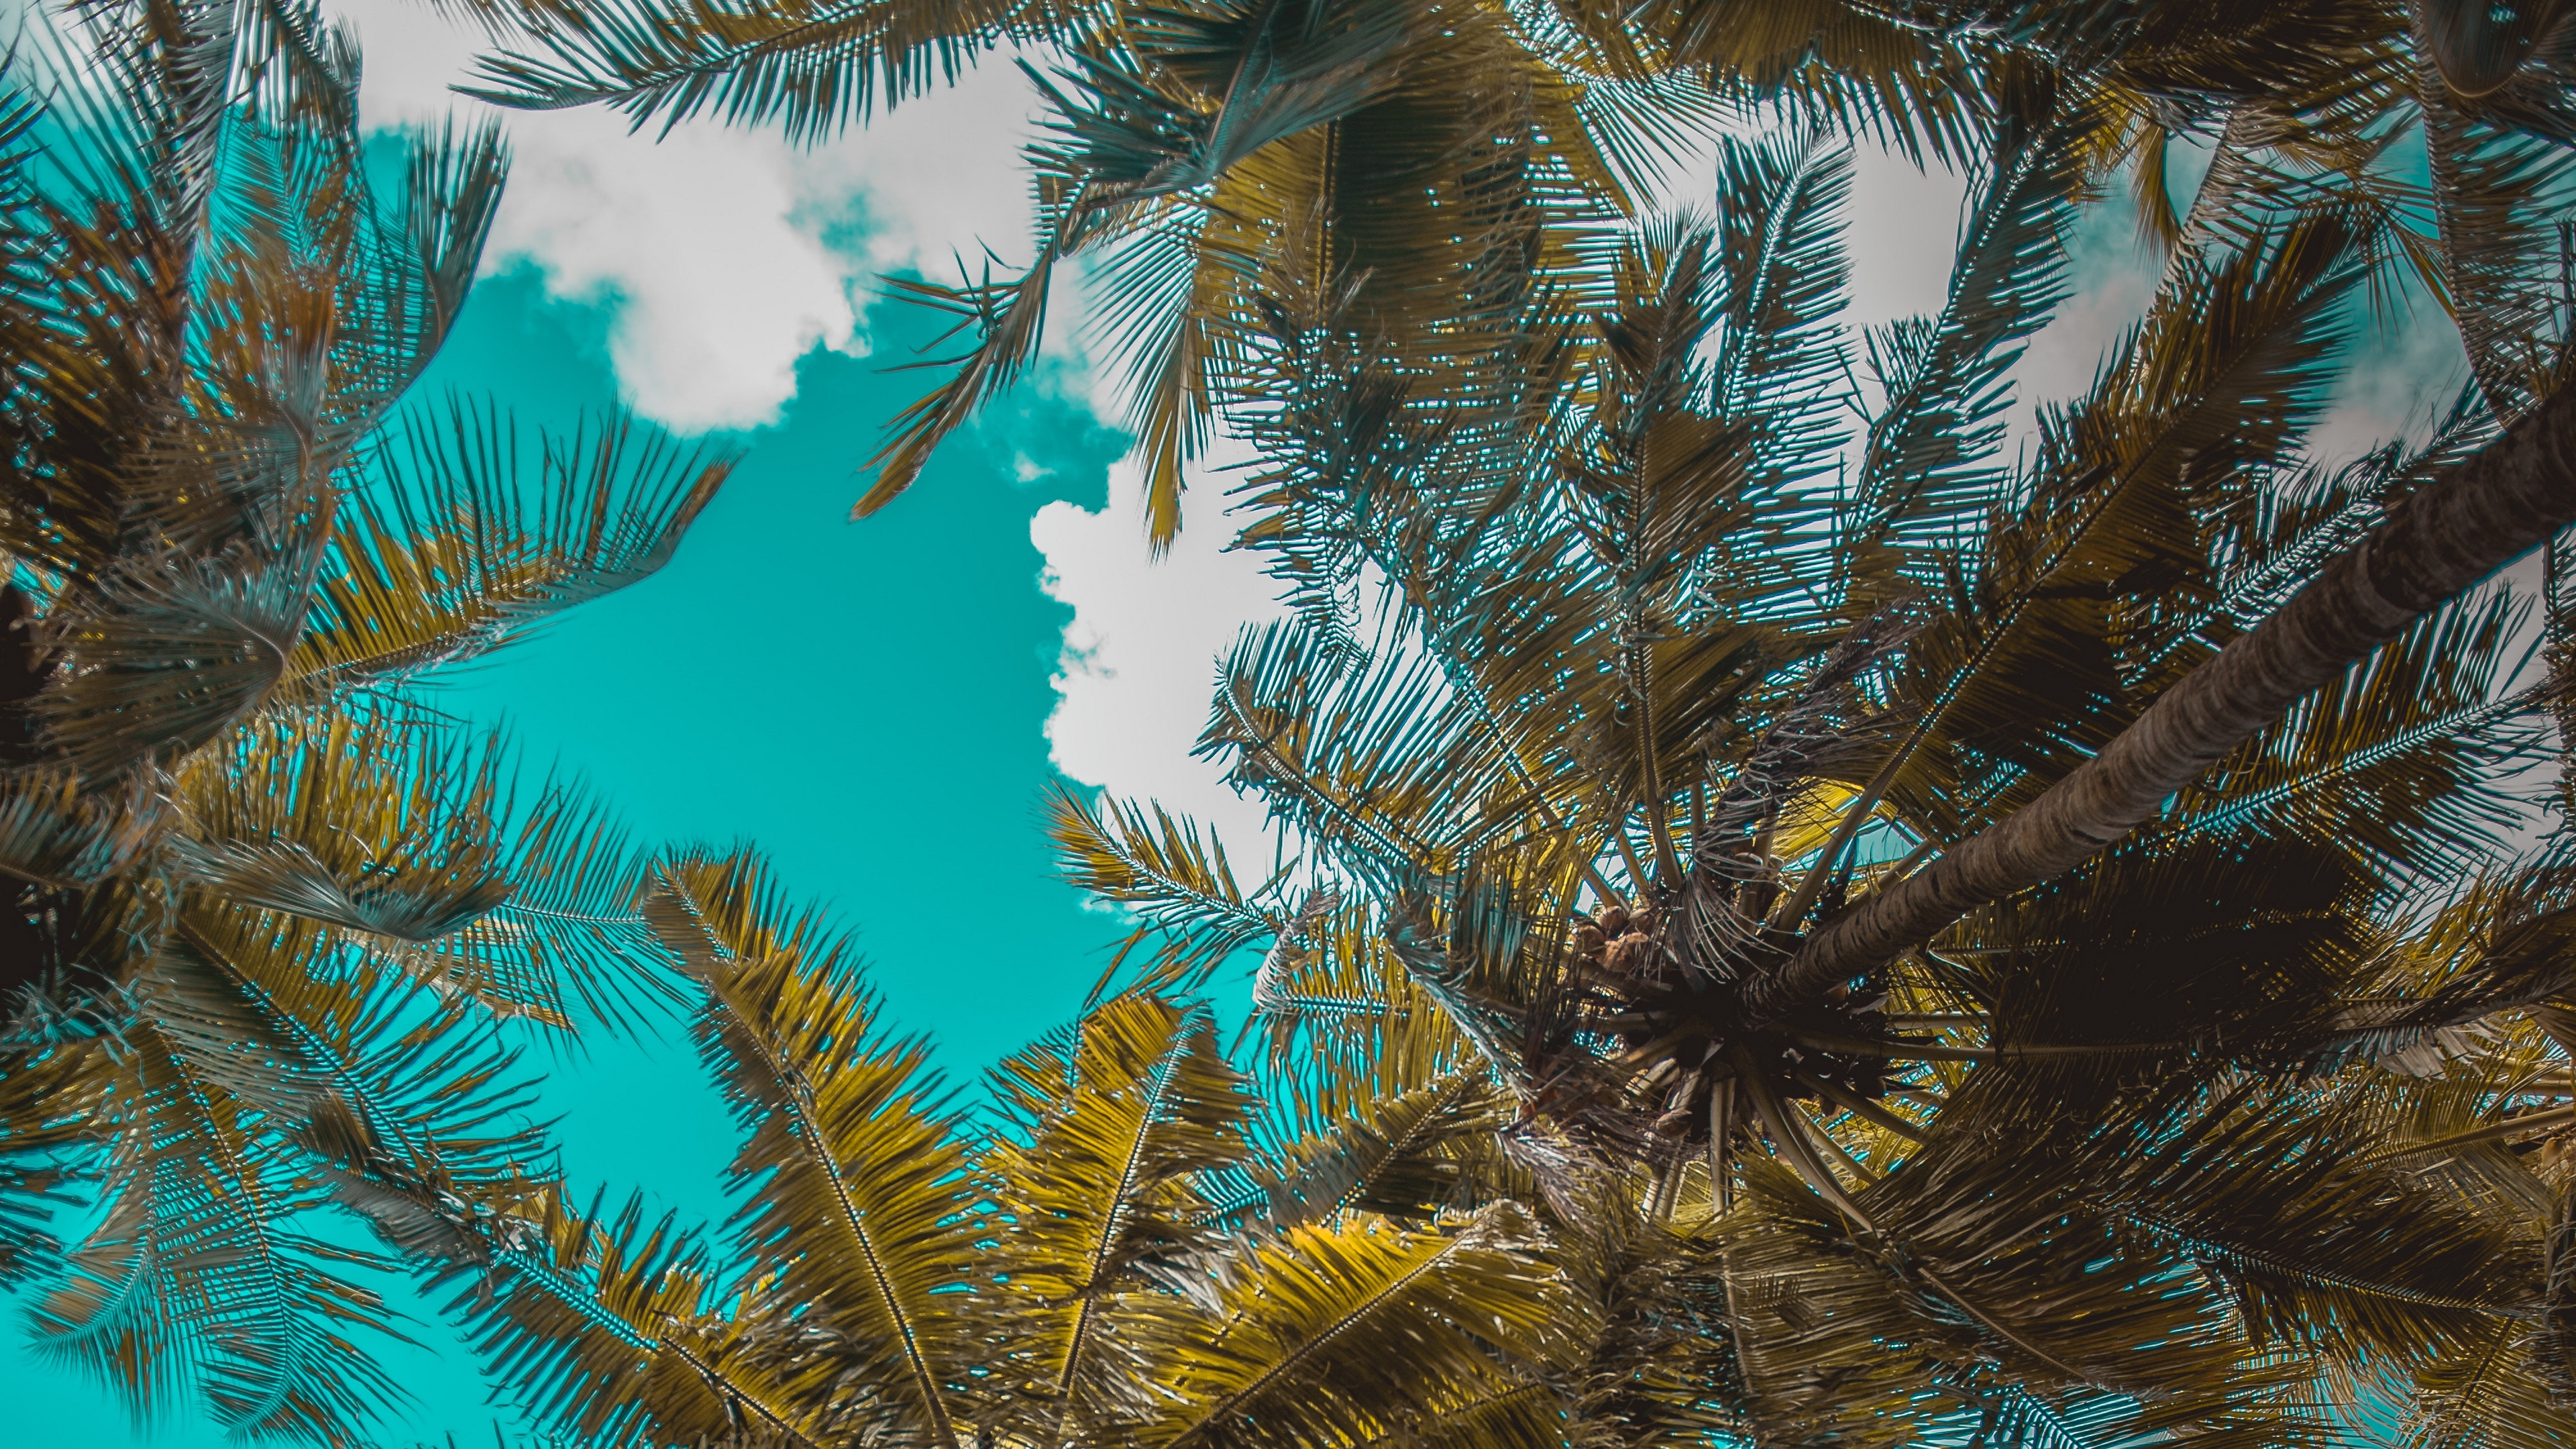 palm trees trees branches tropics sky clouds 4k 1541113730 - palm trees, trees, branches, tropics, sky, clouds 4k - Trees, palm trees, branches